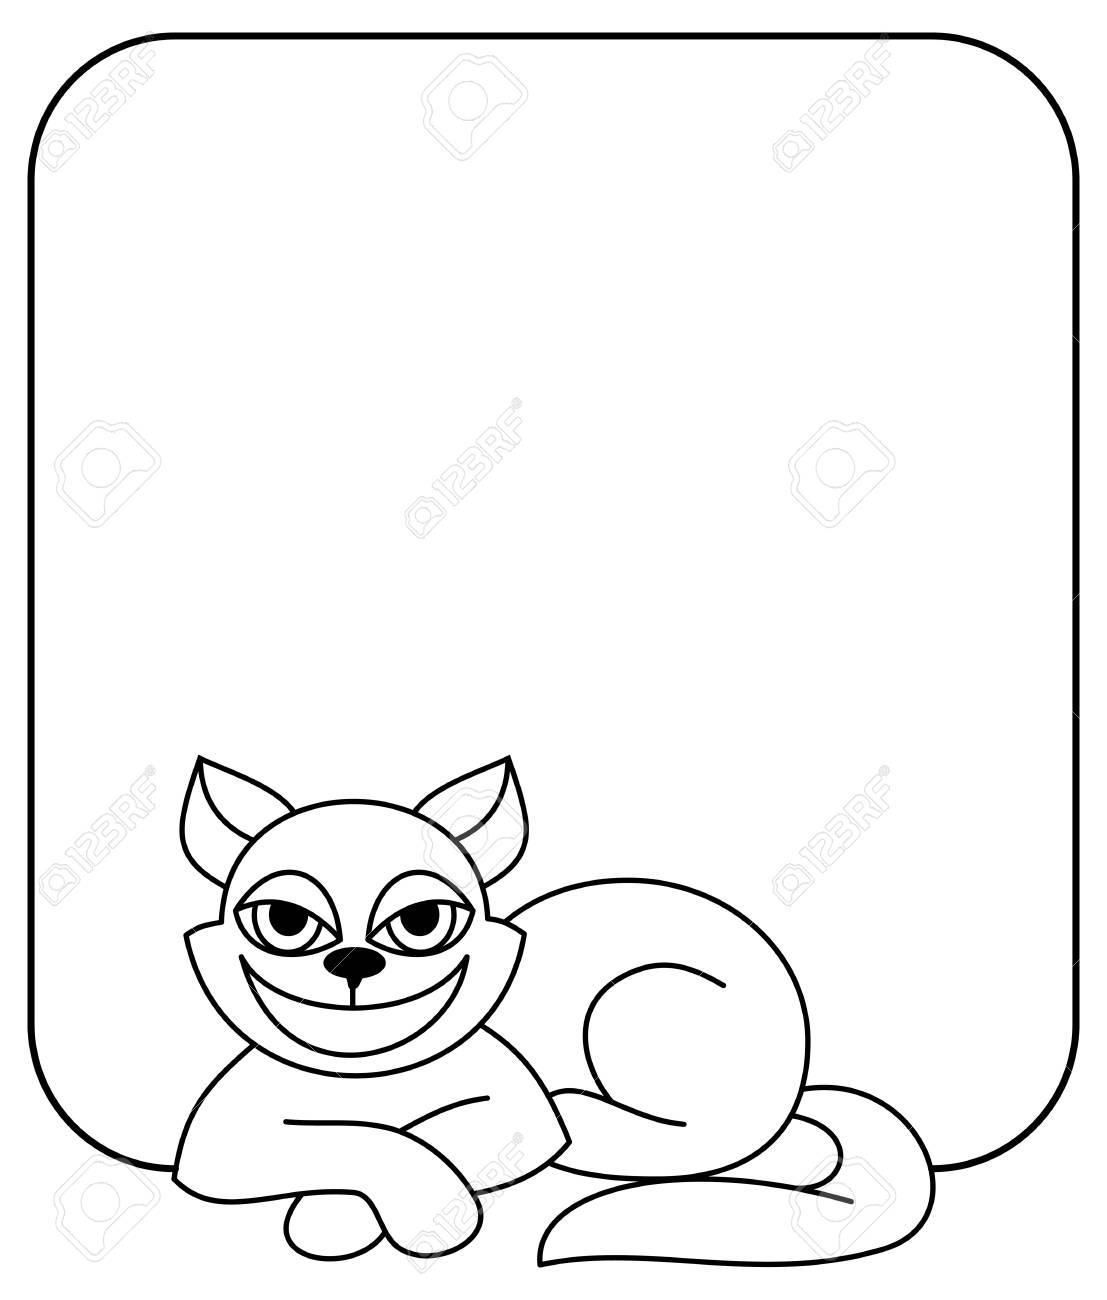 Outline frame with cat. Vector clip art.